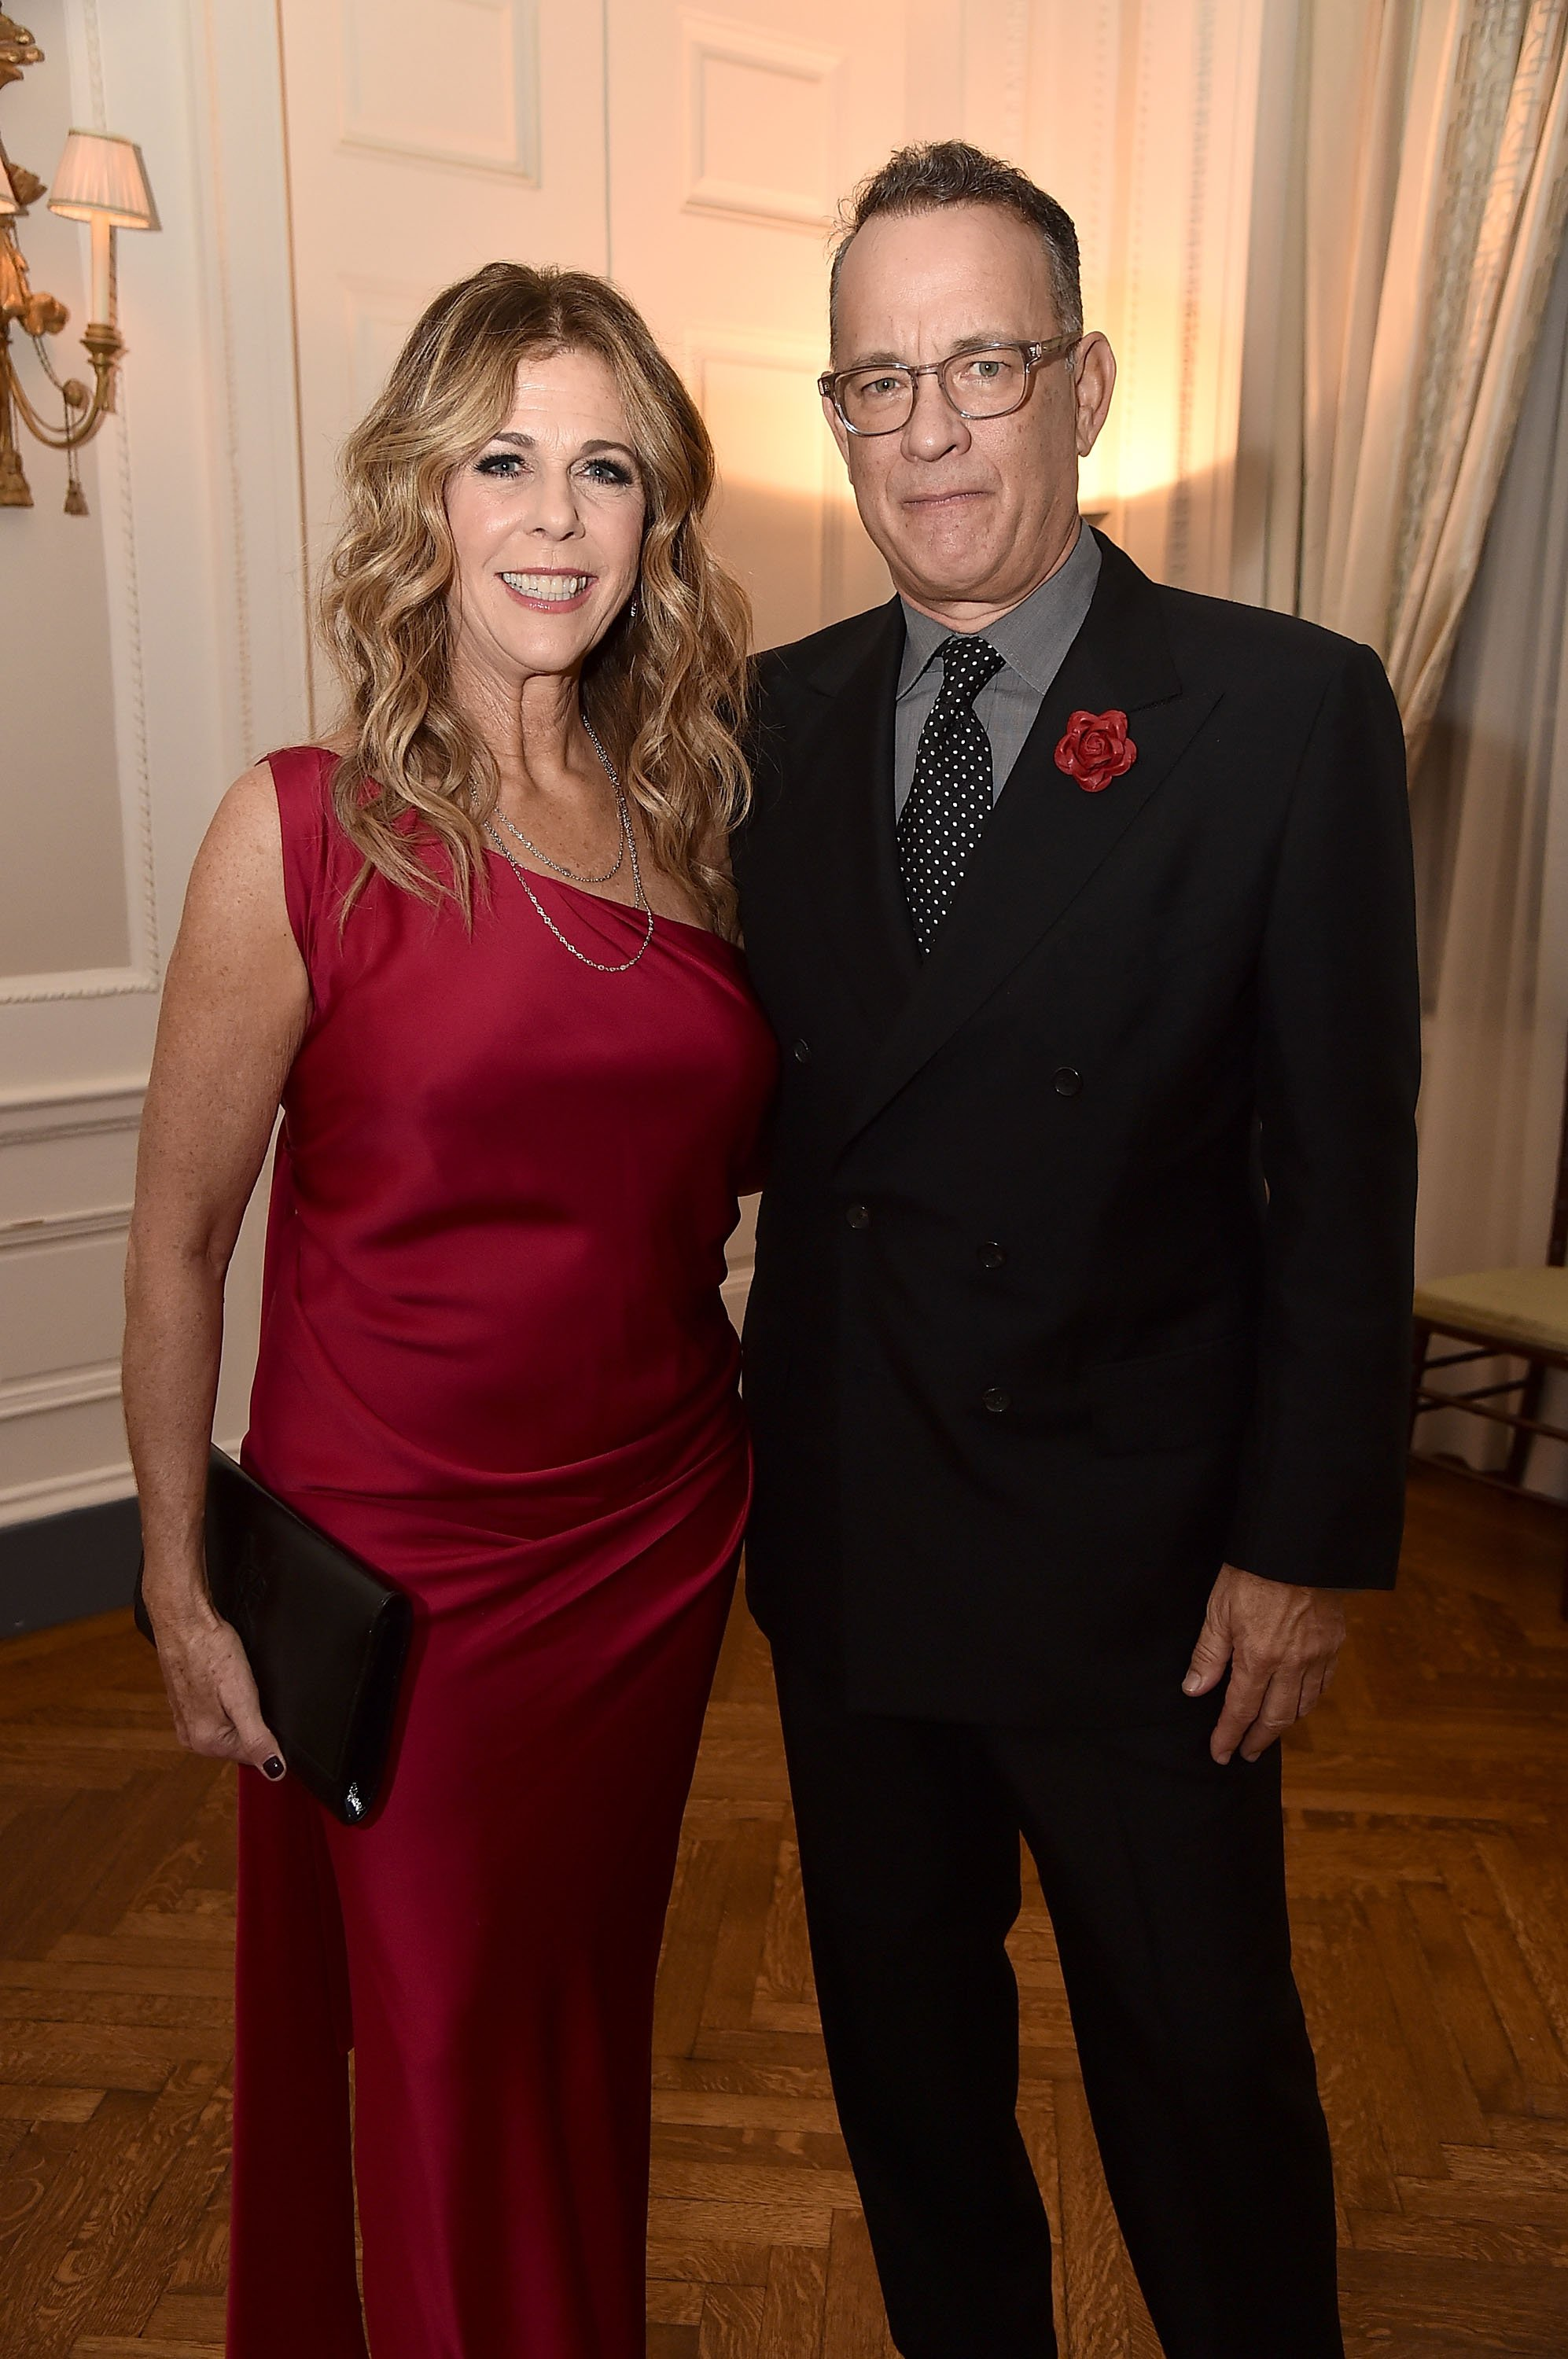 Rita Wilson and Tom Hanks attend the 2018 American Friends of Blerancourt Dinner at Colony Club on November 9, 2018 | Photo: GettyImages